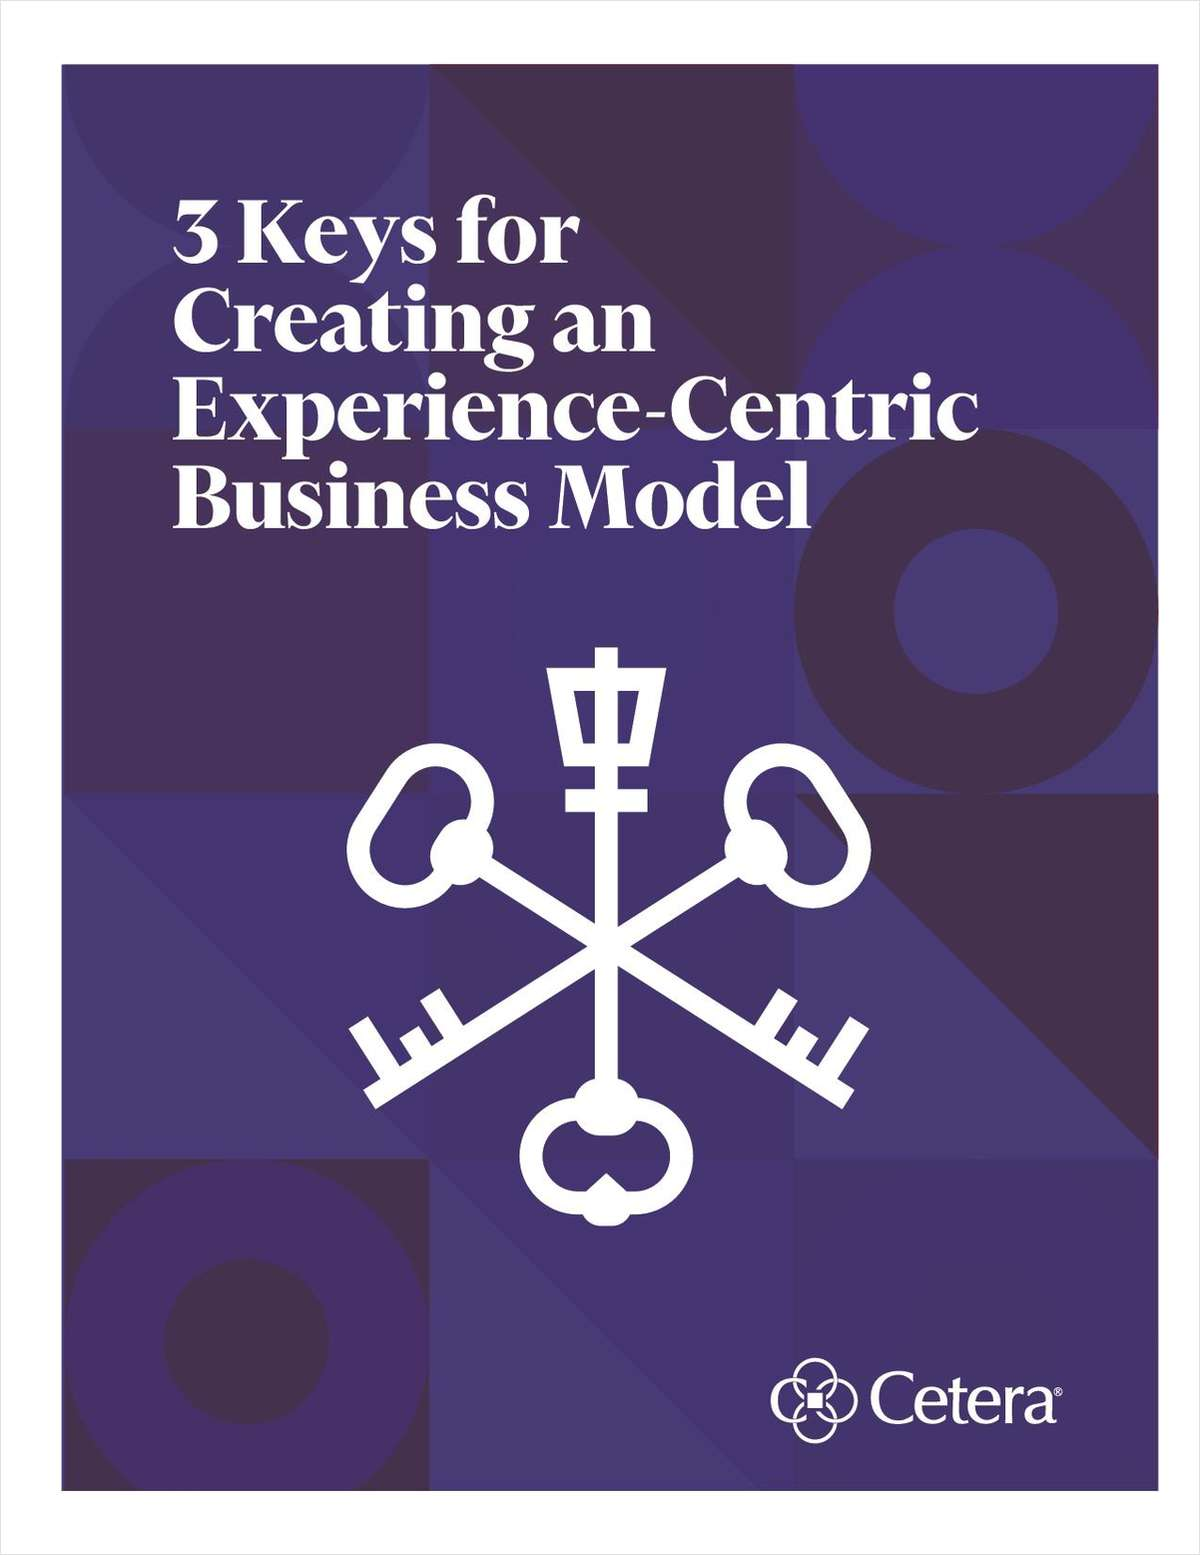 3 Keys for Creating an Experience-Centric Business Model